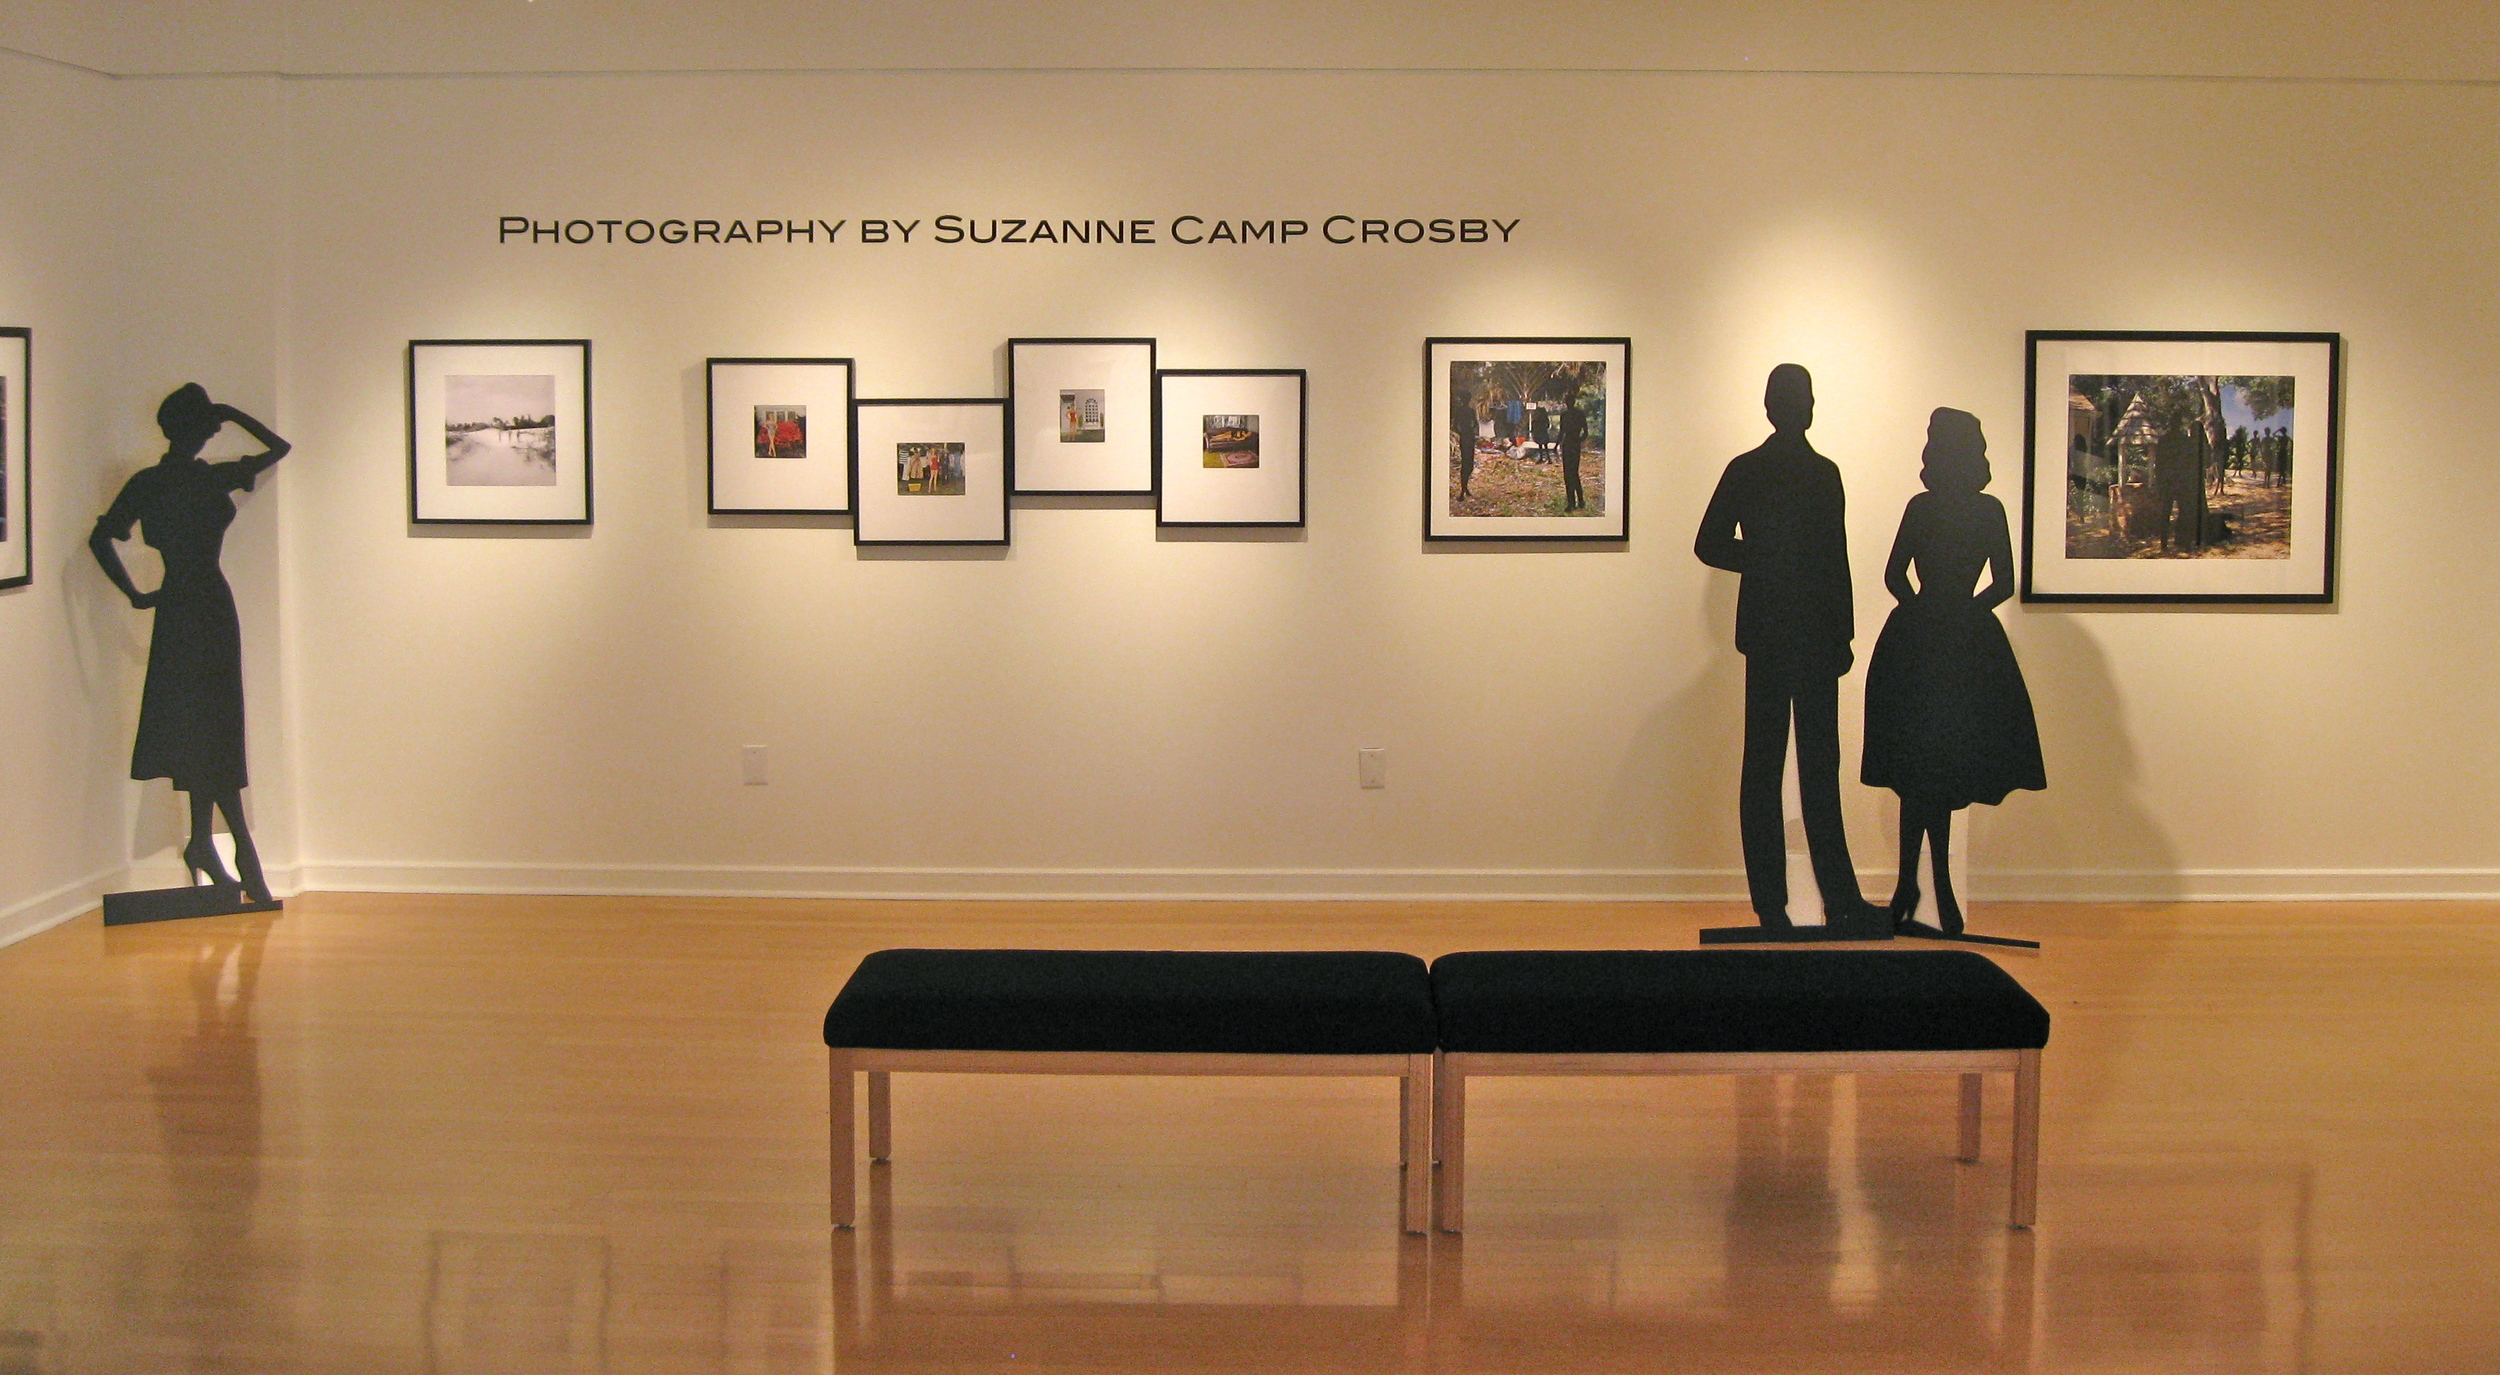 Suzanne Figures  featured over 40 pieces by Suzanne Camp Crosby, of or relating to figures. Life-sized versions of her antique paper dolls were created to stand alongside their framed counterparts - as seen in Gallery 221@HCC, 2013 Spring, Dale Mabry campus - curated and designed by Katherine Gibson.